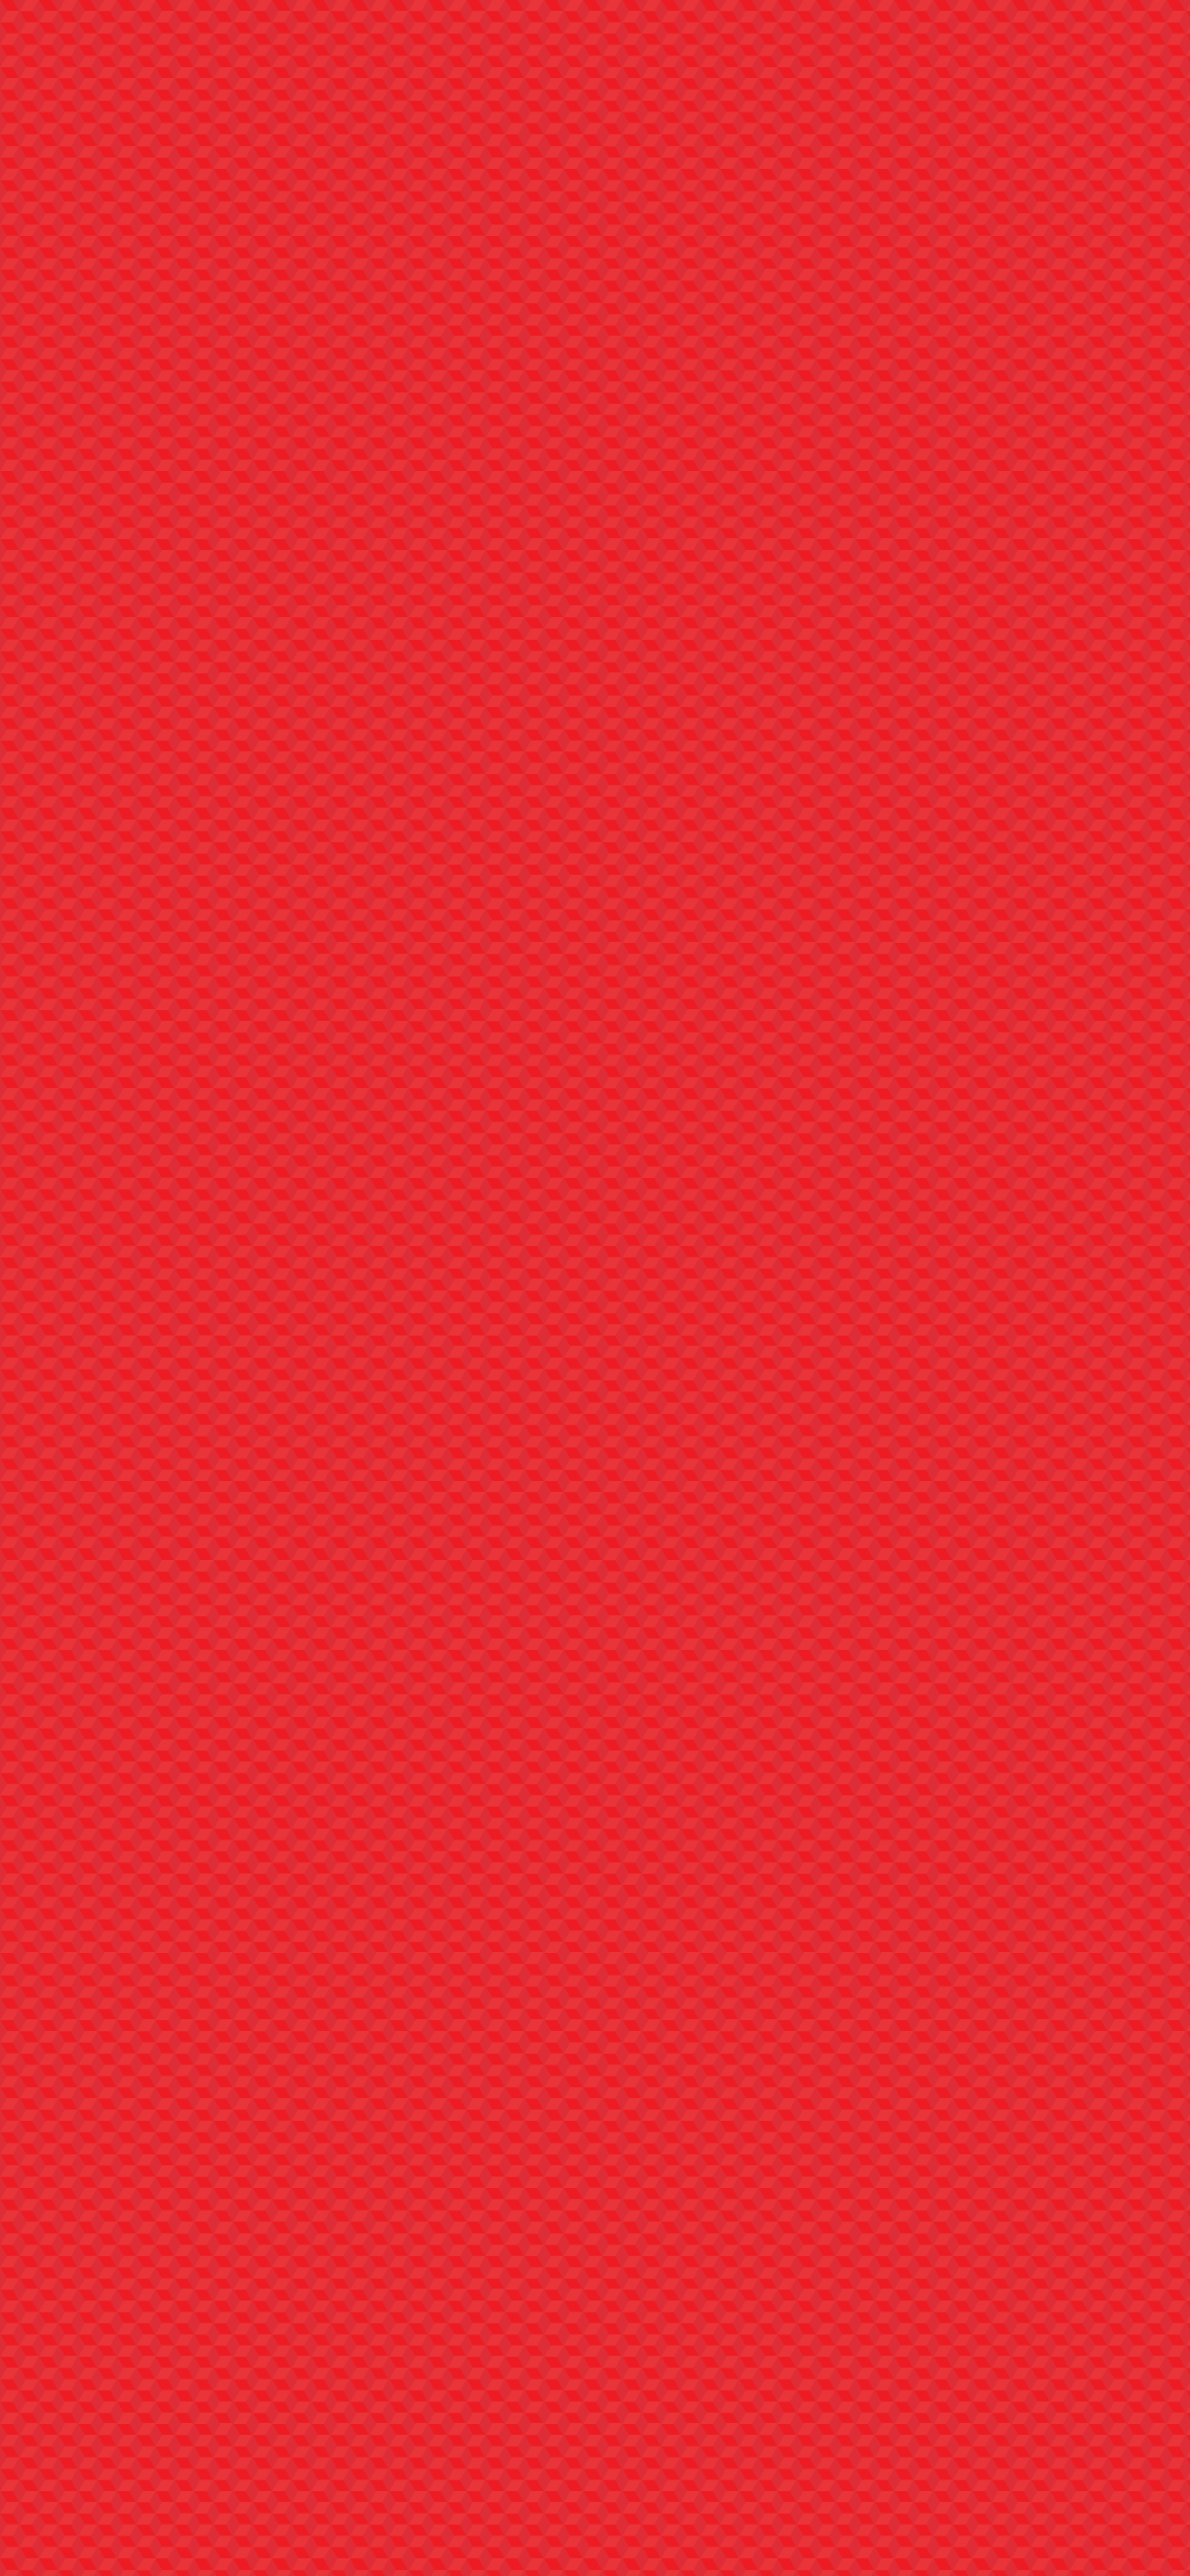 clean and simple red background wallpaper for mobile phone